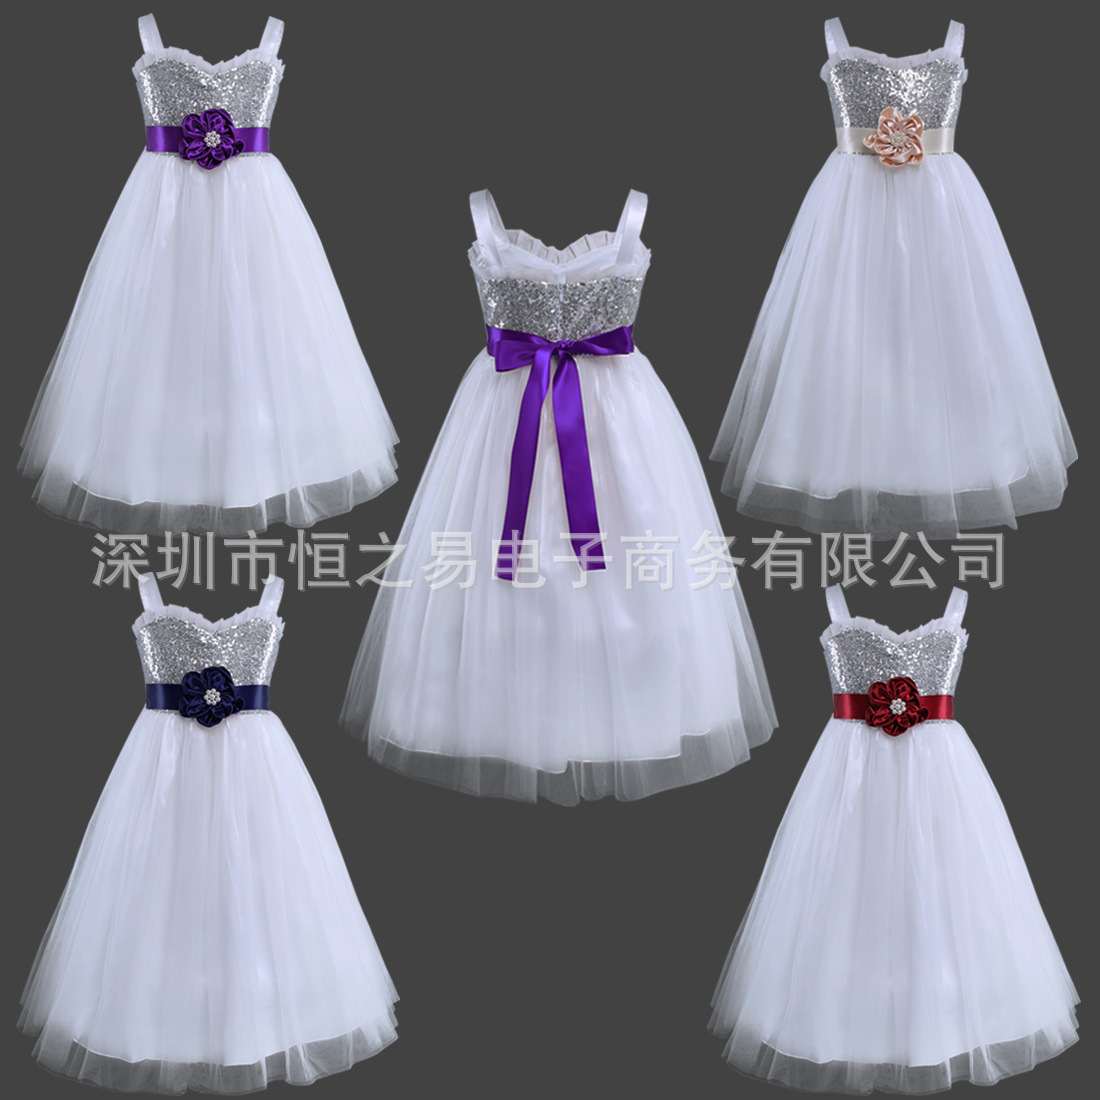 Tulle A Line Sashes Bow Flower Girl Dresses for Wedding First Communion Wedding Party Runway Show Pageant Danceway